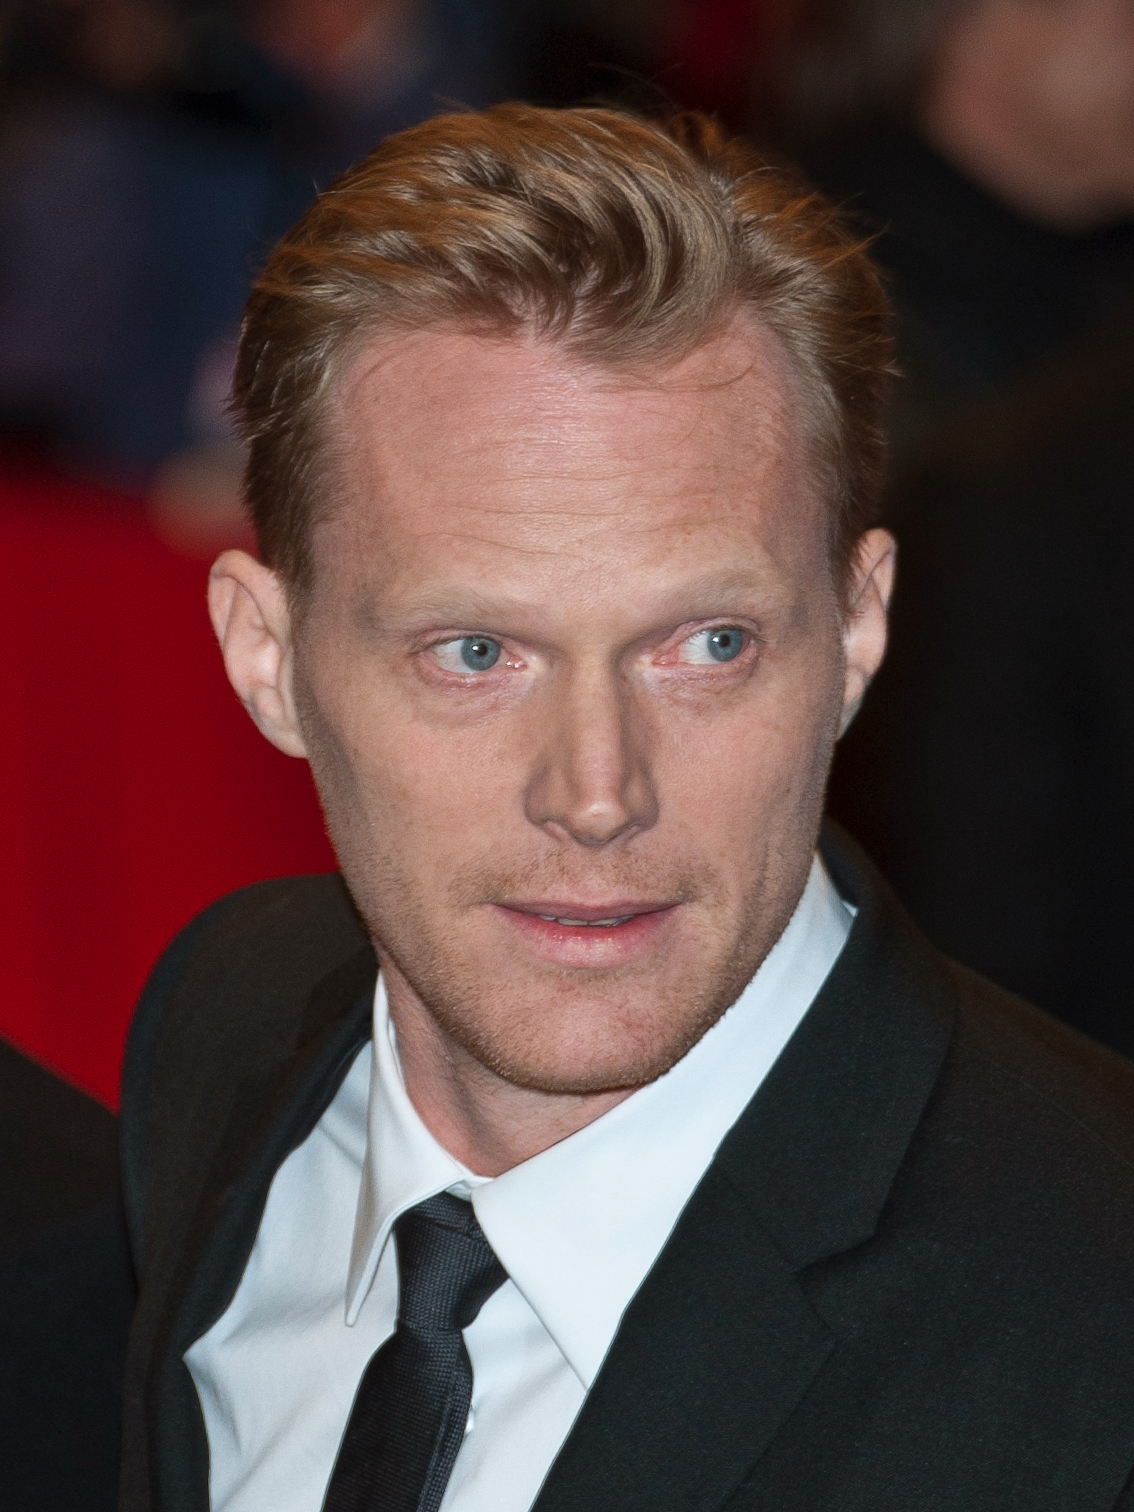 Paul Bettany - Wikiquote